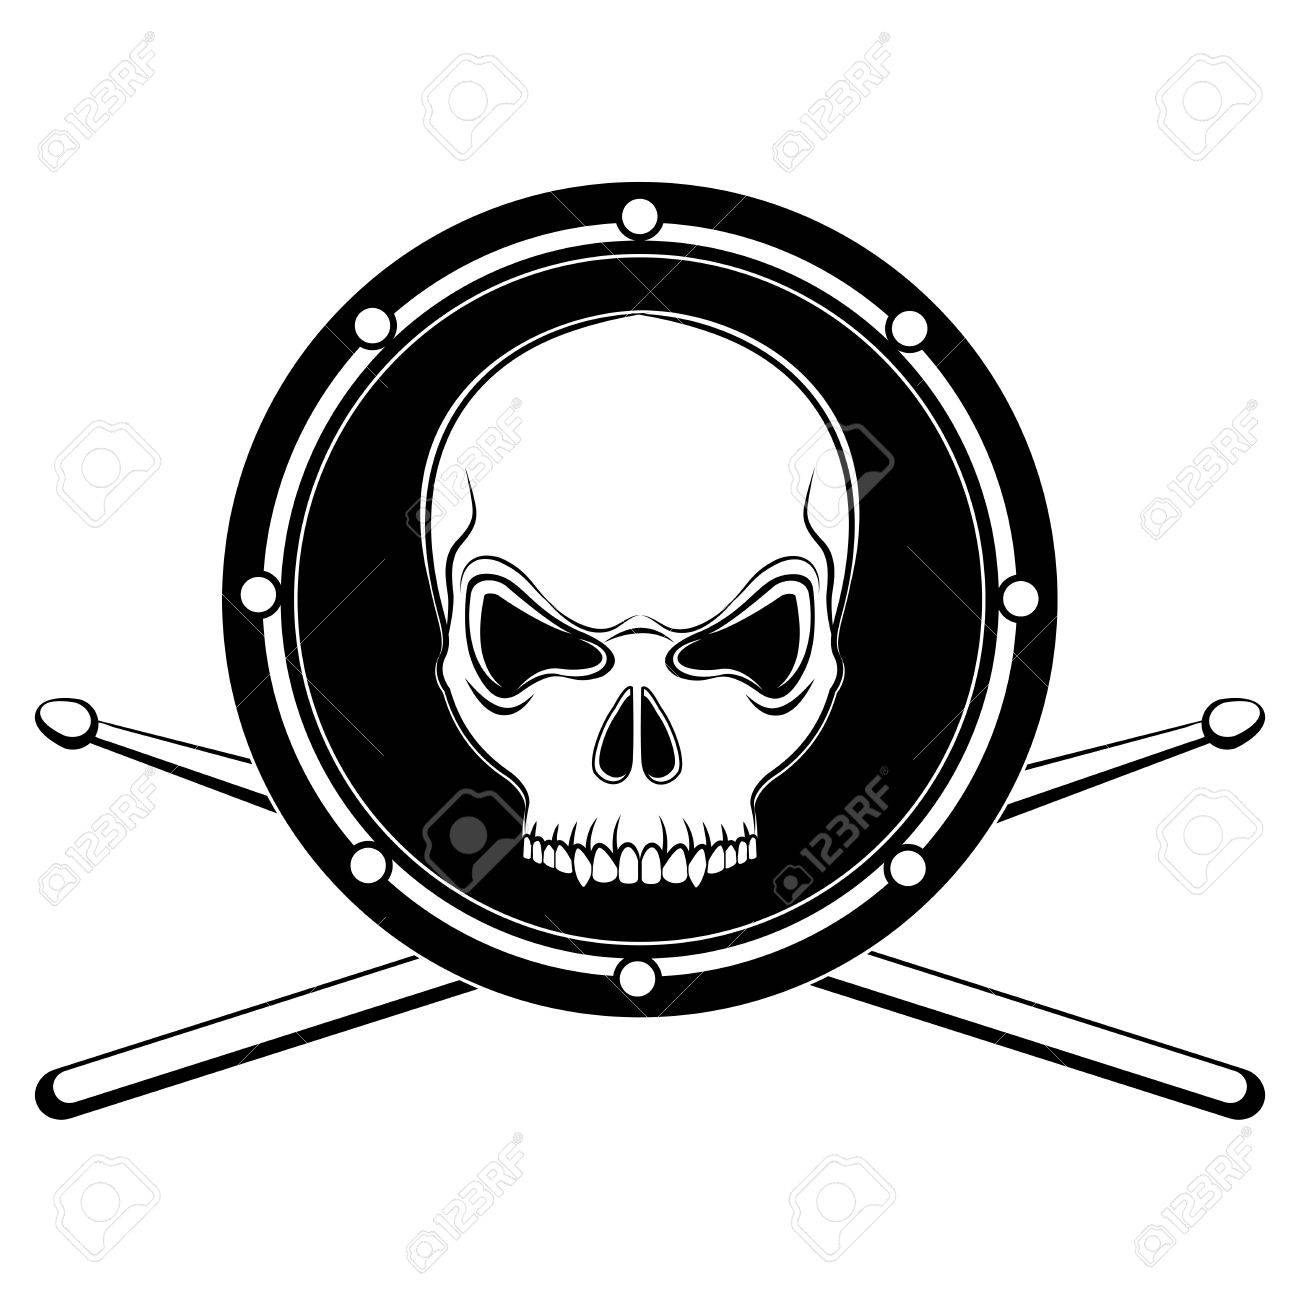 jolly Roger drum skull with drumsticks isolated on white background Stock Vector - 14073835